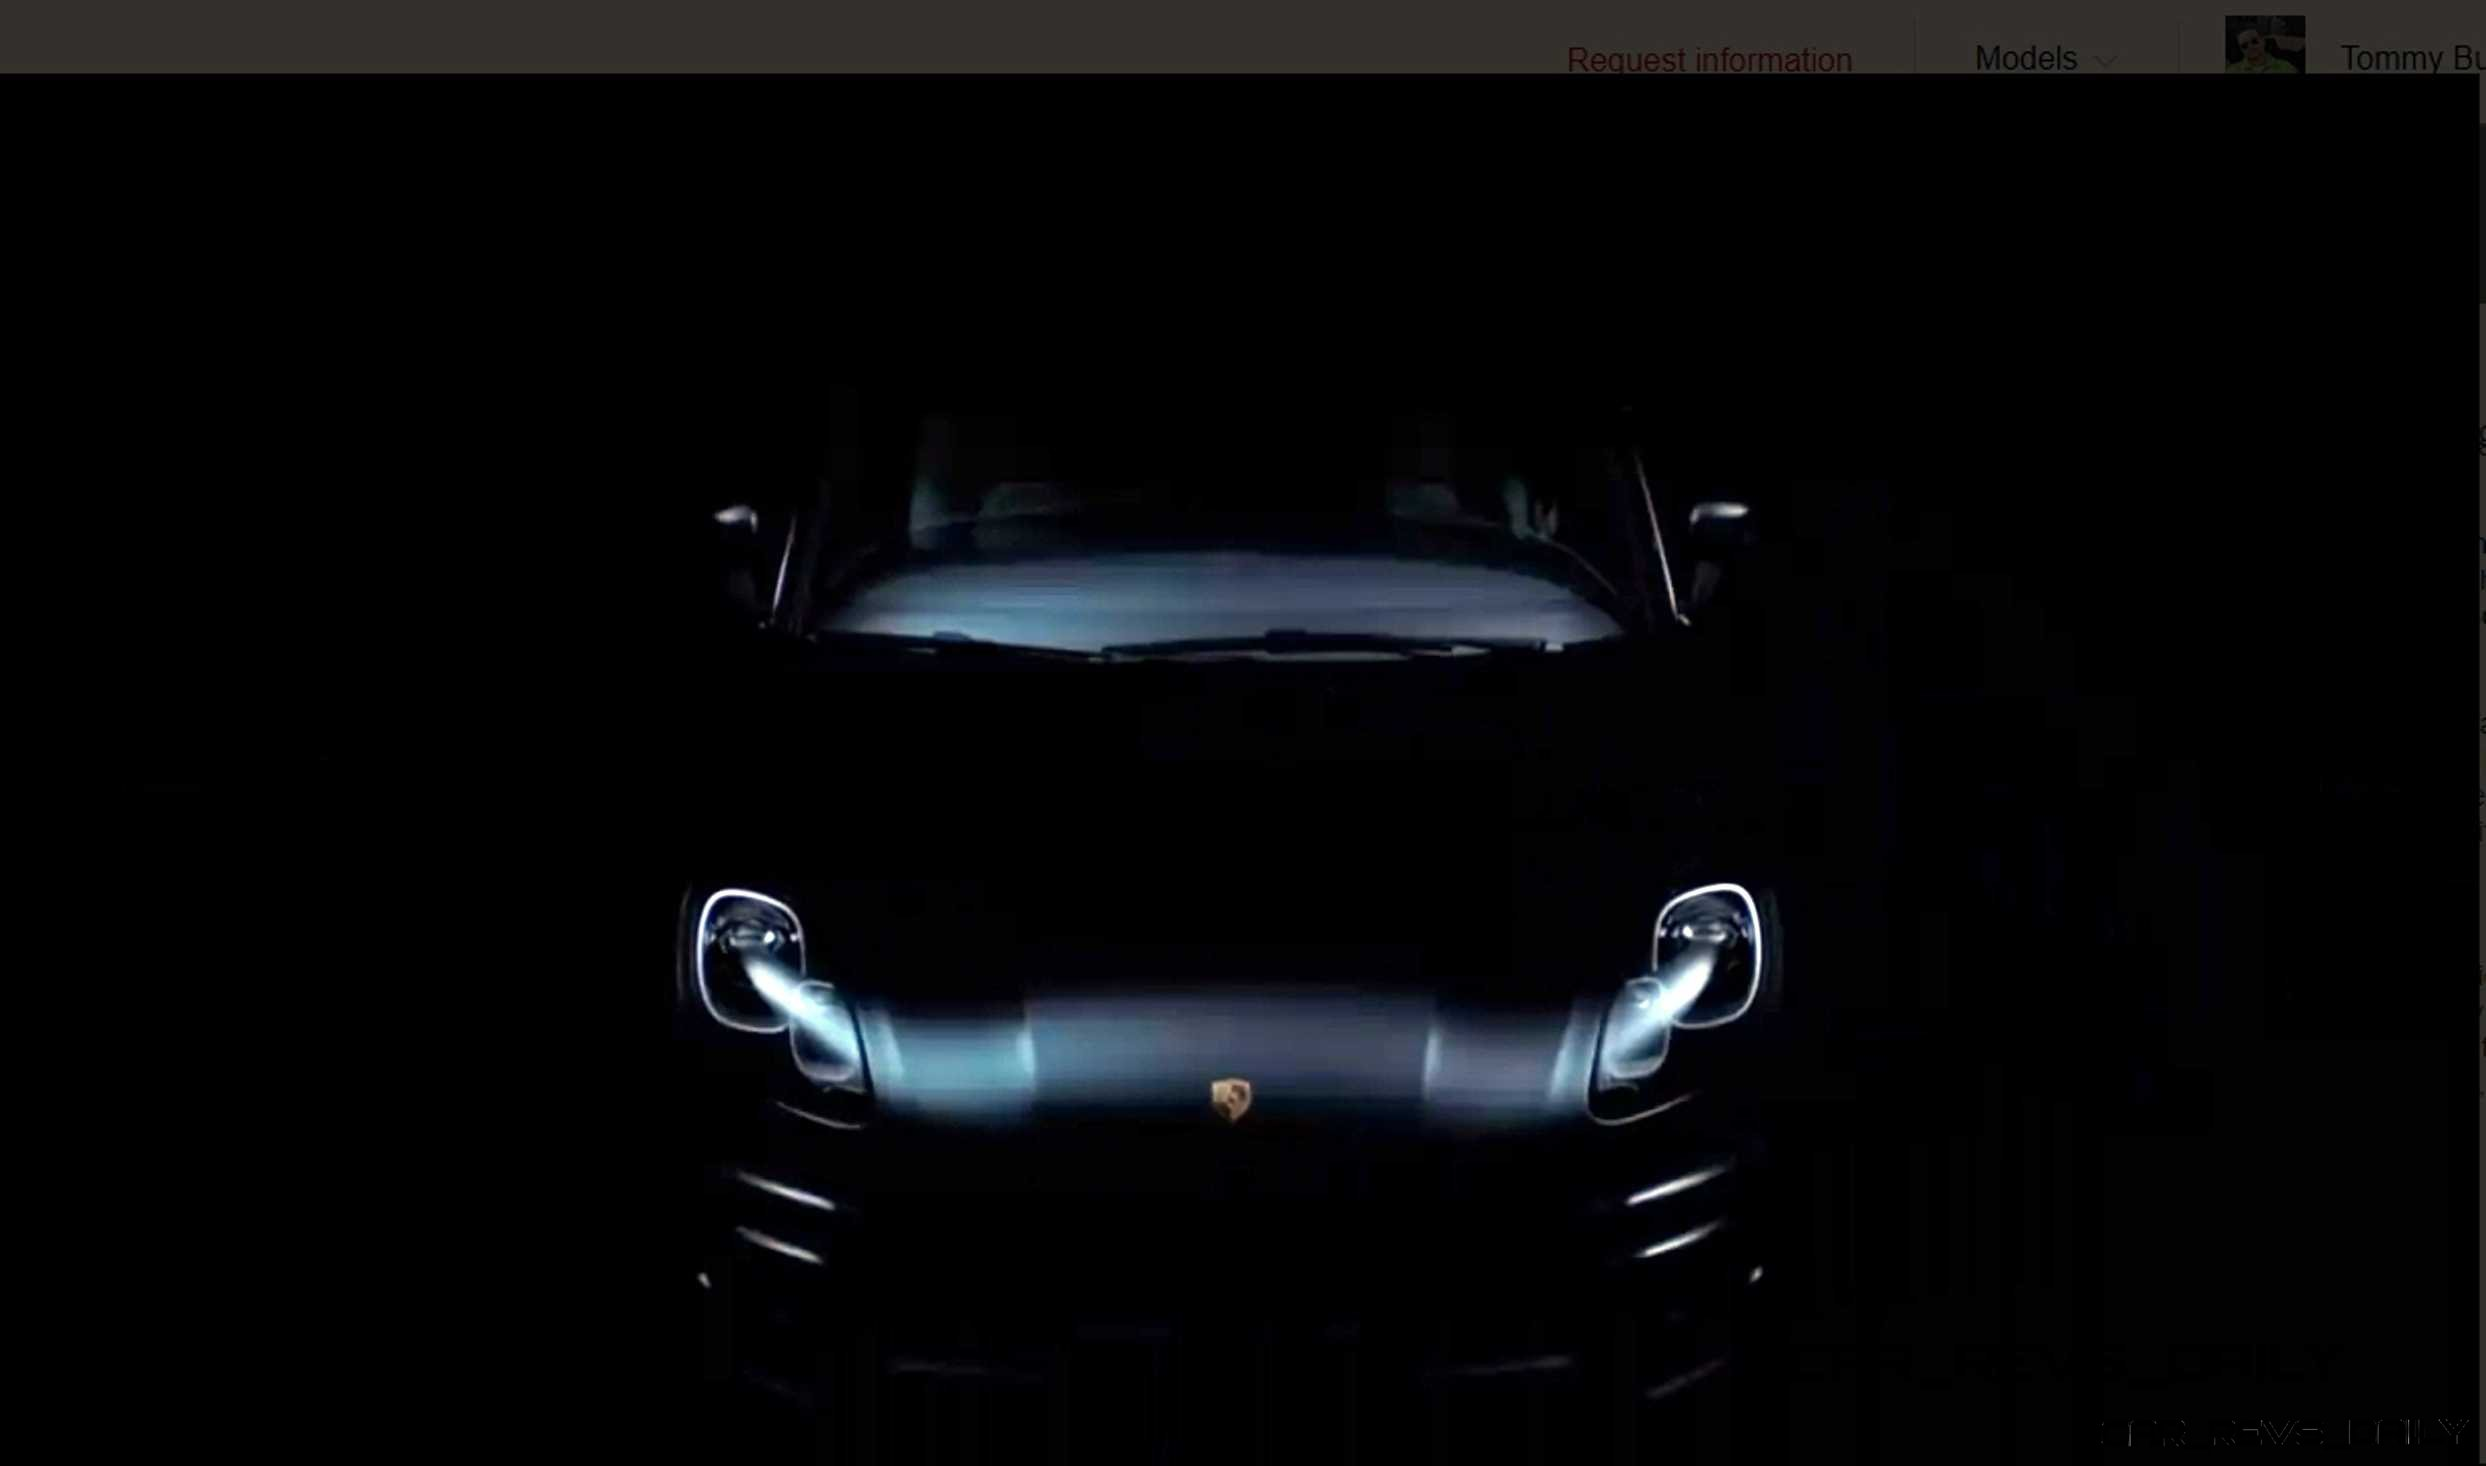 2015 Porsche Macan - Latest Images - CarRevsDaily.com 32